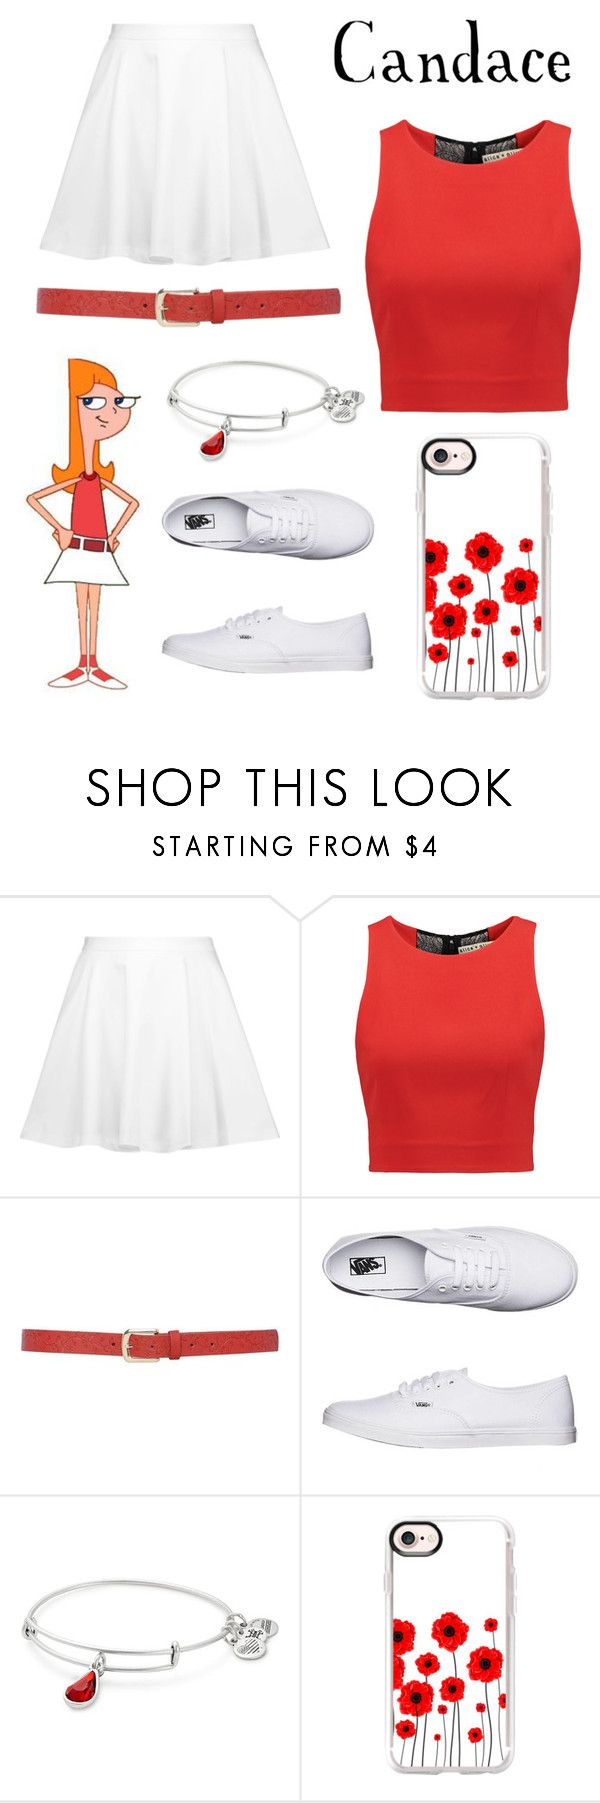 """Candace"" by brianapaige14 ❤ liked on Polyvore featuring Alice + Olivia, M&Co, Vans, Alex and Ani, Casetify, white, red, disney, phineasandferb and disneycharacter"